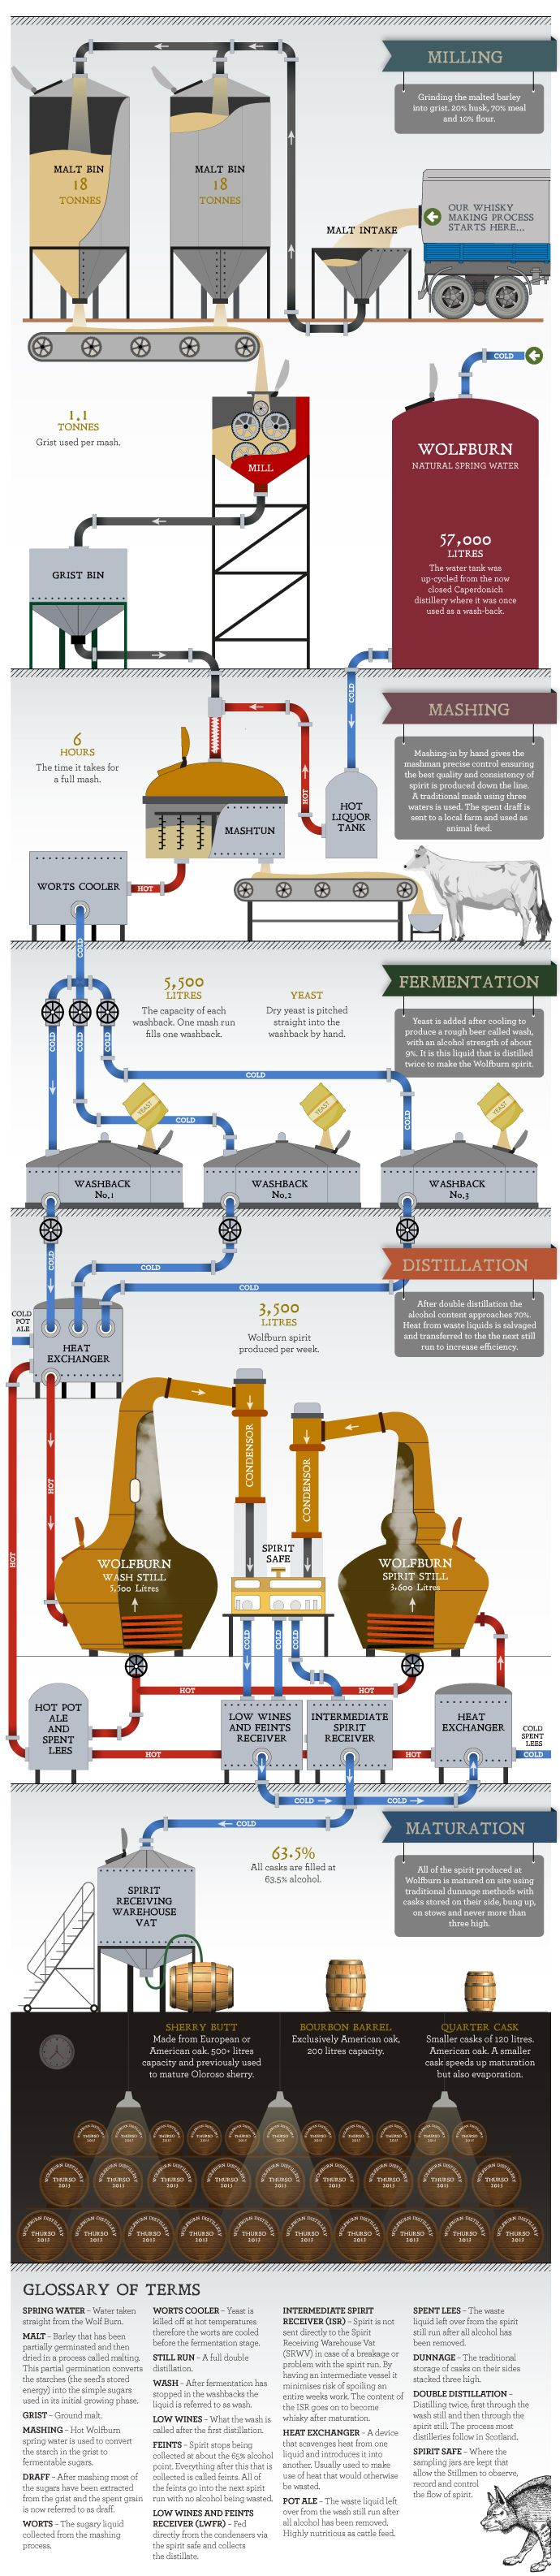 Wolfburn the process also best engineering images on pinterest industrial rh